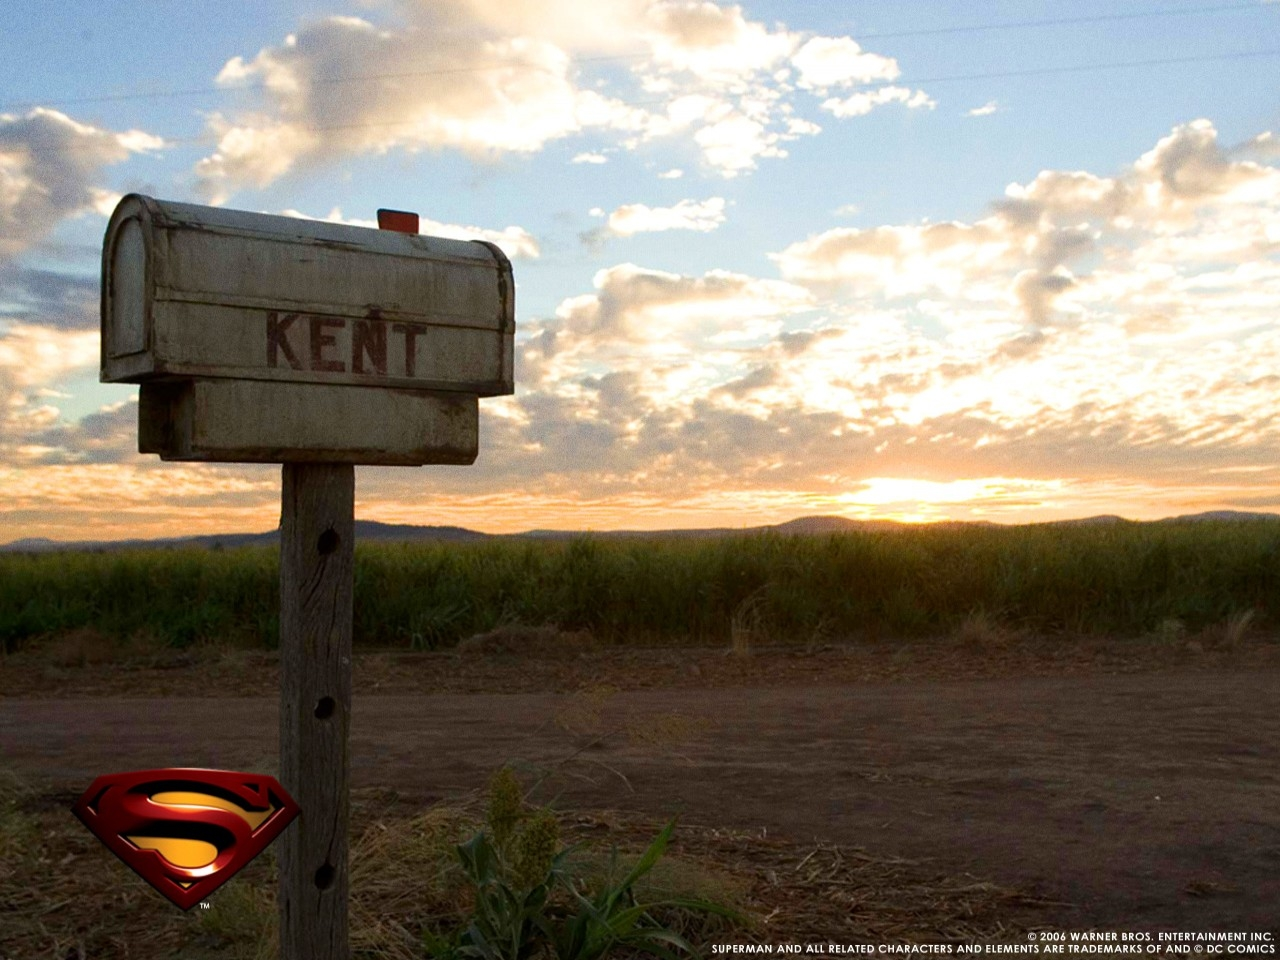 Wallpaper del film Superman Returns con la cassetta della posta dei Kent